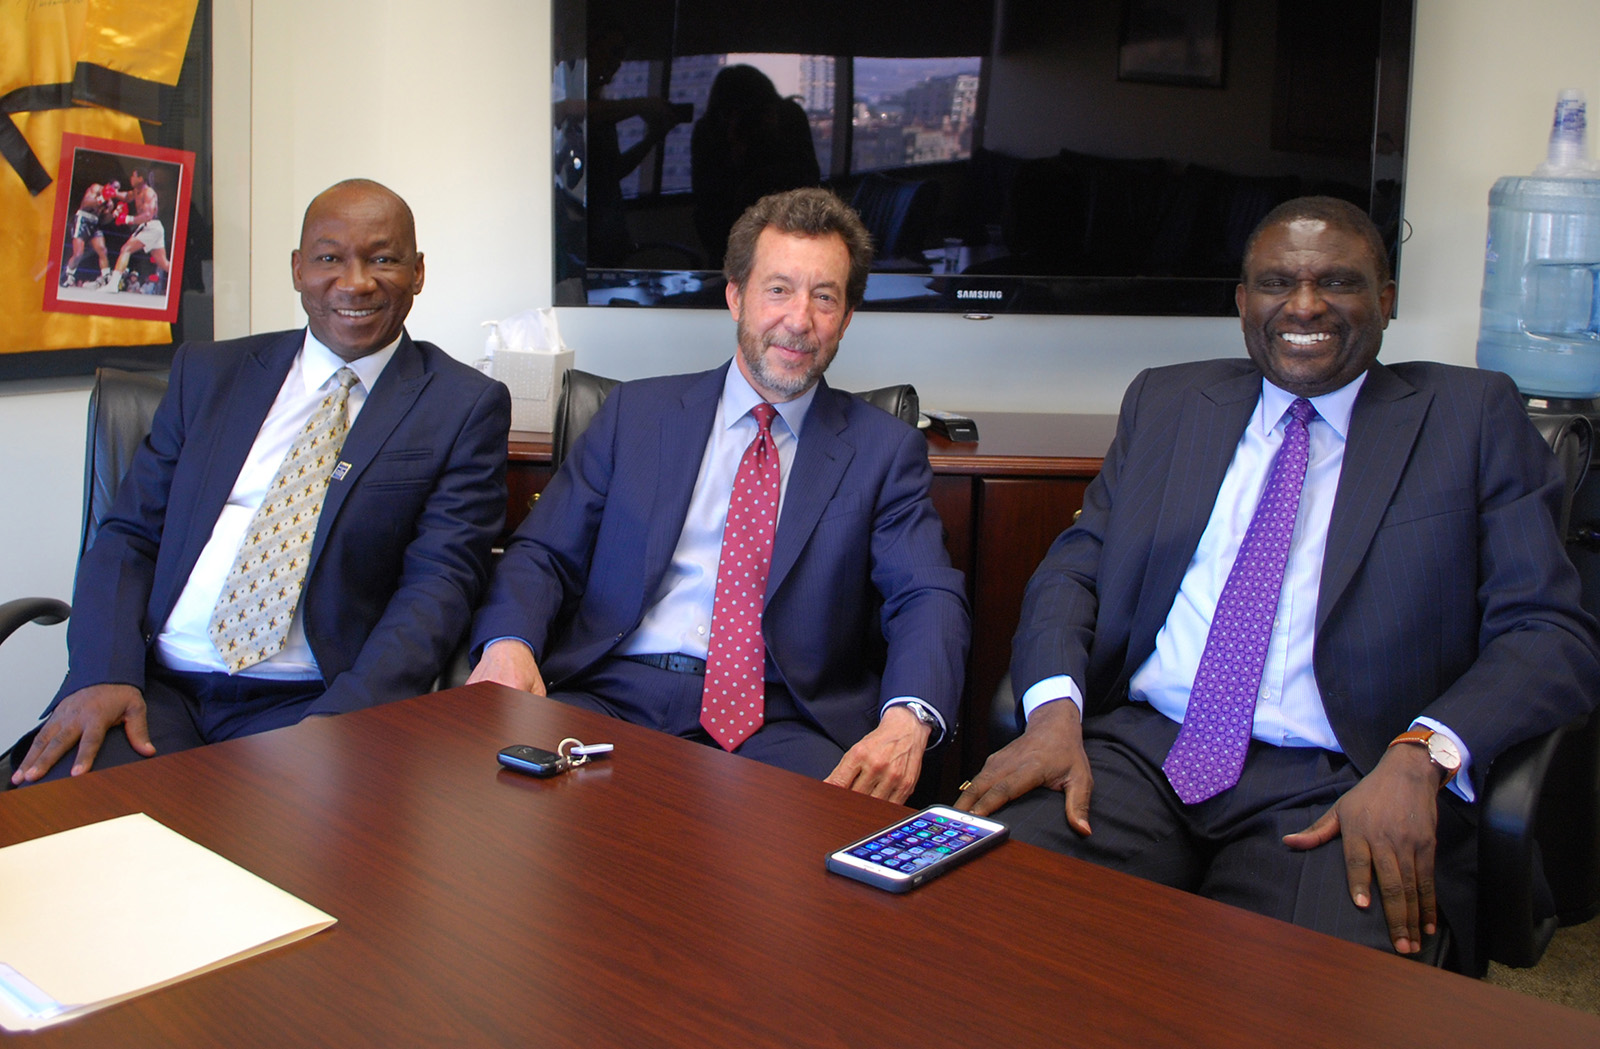 Nigerian Barrister Abdullahi Wahab Zakari, at left, meets with Public Defender Randy Mize, center, and retired Public Defender Henry Coker to discuss how the County Public Defender's Office operates in collaboration with San Diego County's  legal community.